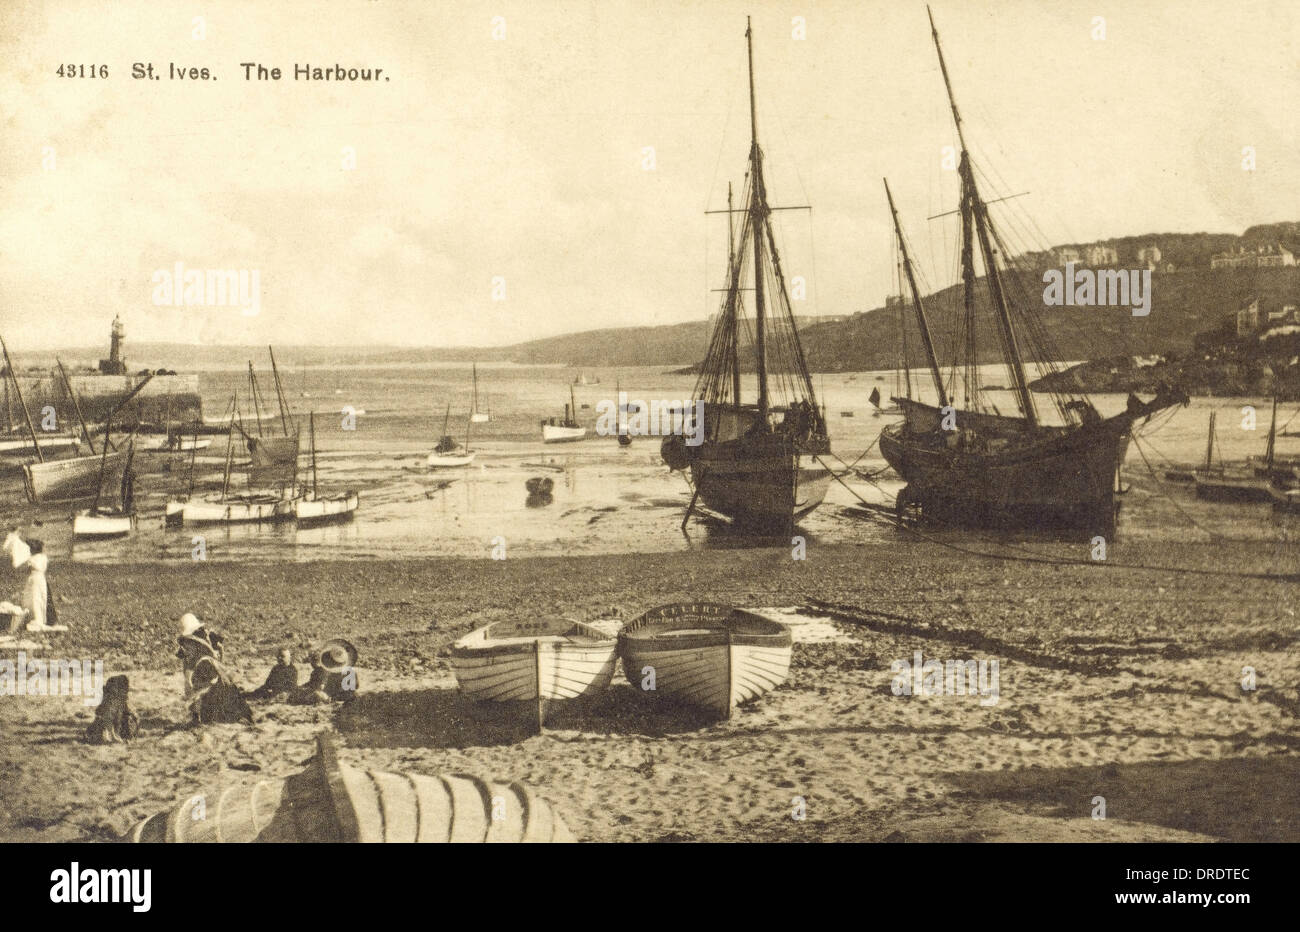 The harbour - St Ives - Stock Image